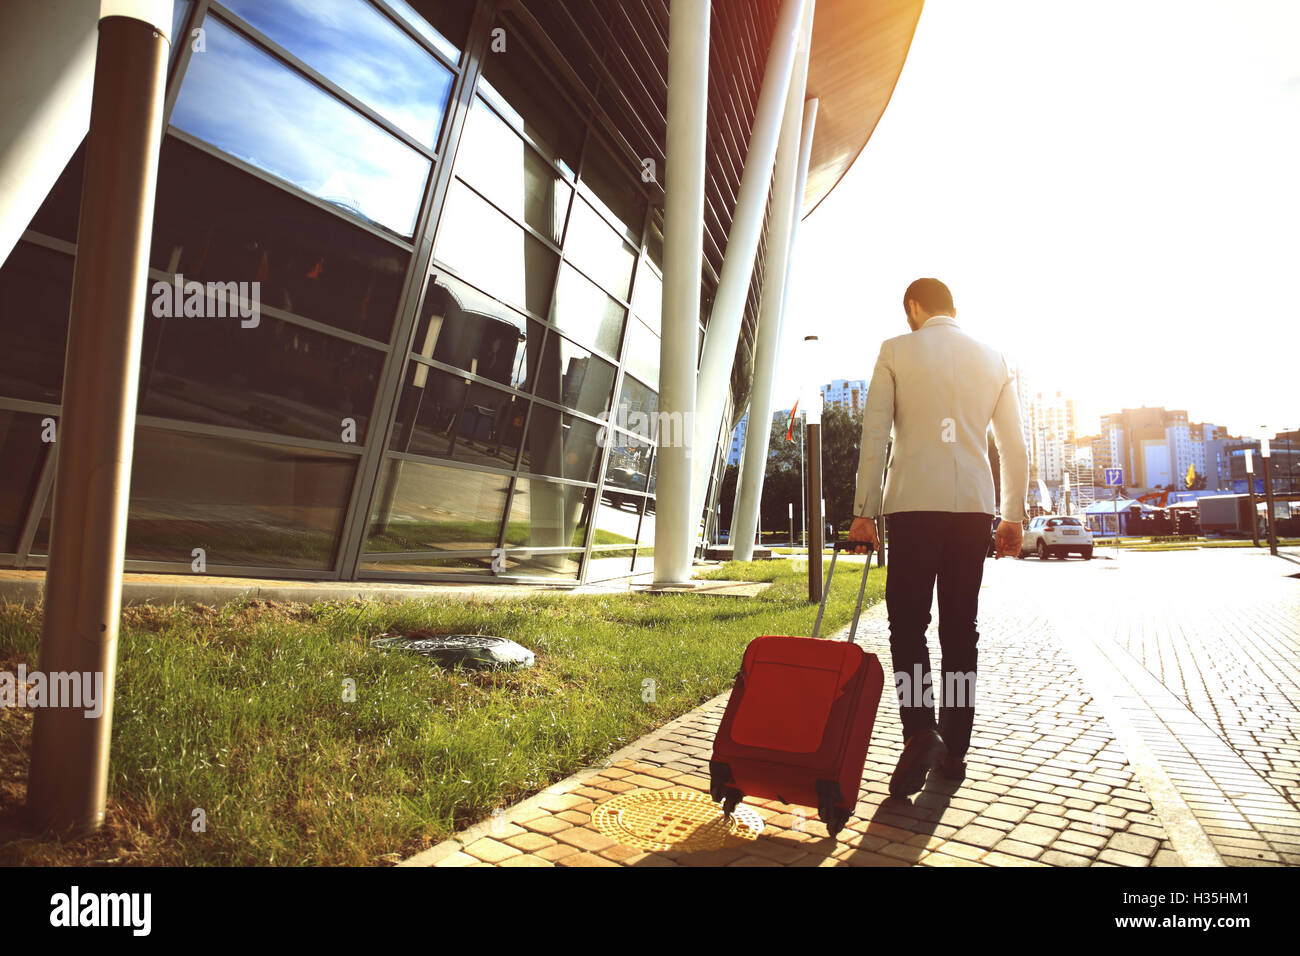 Rear view of young Businessman walking down street with luggage - Stock Image